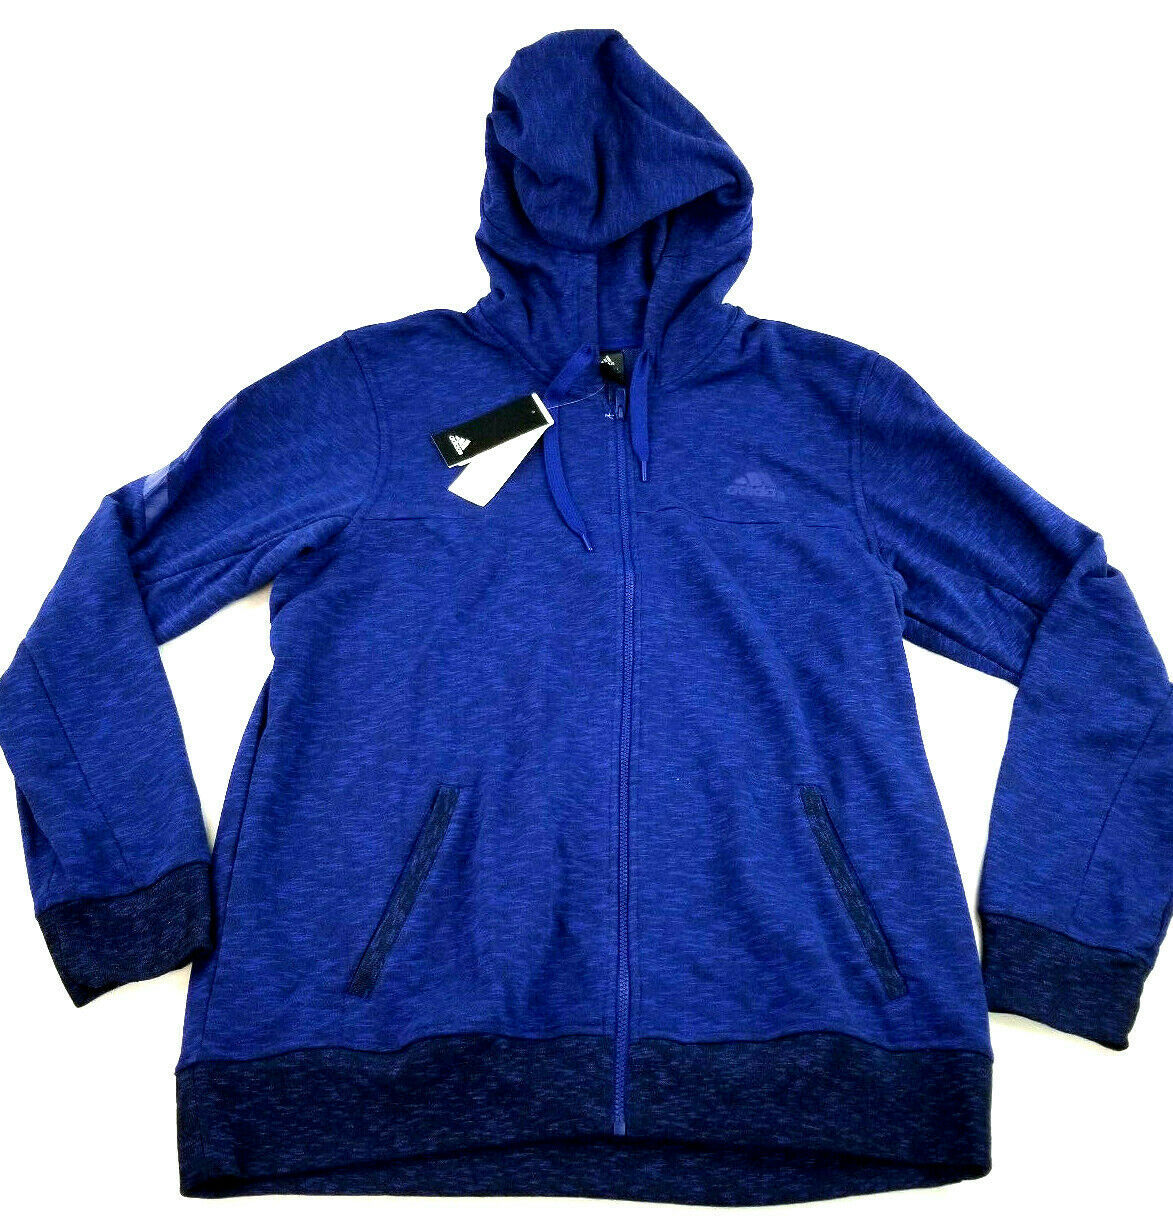 new ADIDAS men jacket hoodie full zip CW9658 blue 2XL MSRP $75